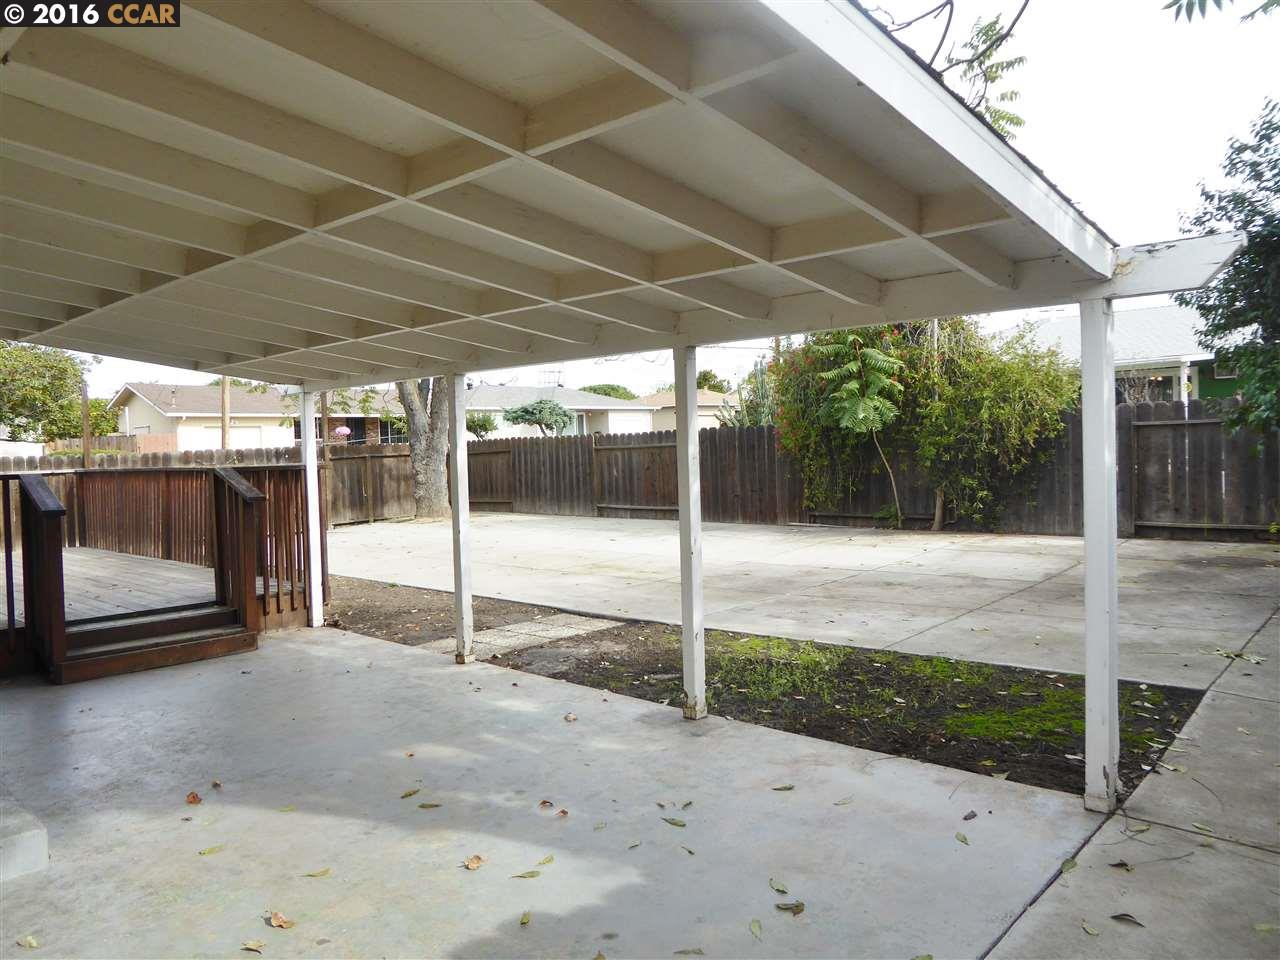 Additional photo for property listing at 1201 Miller Street  Antioch, California 94509 United States